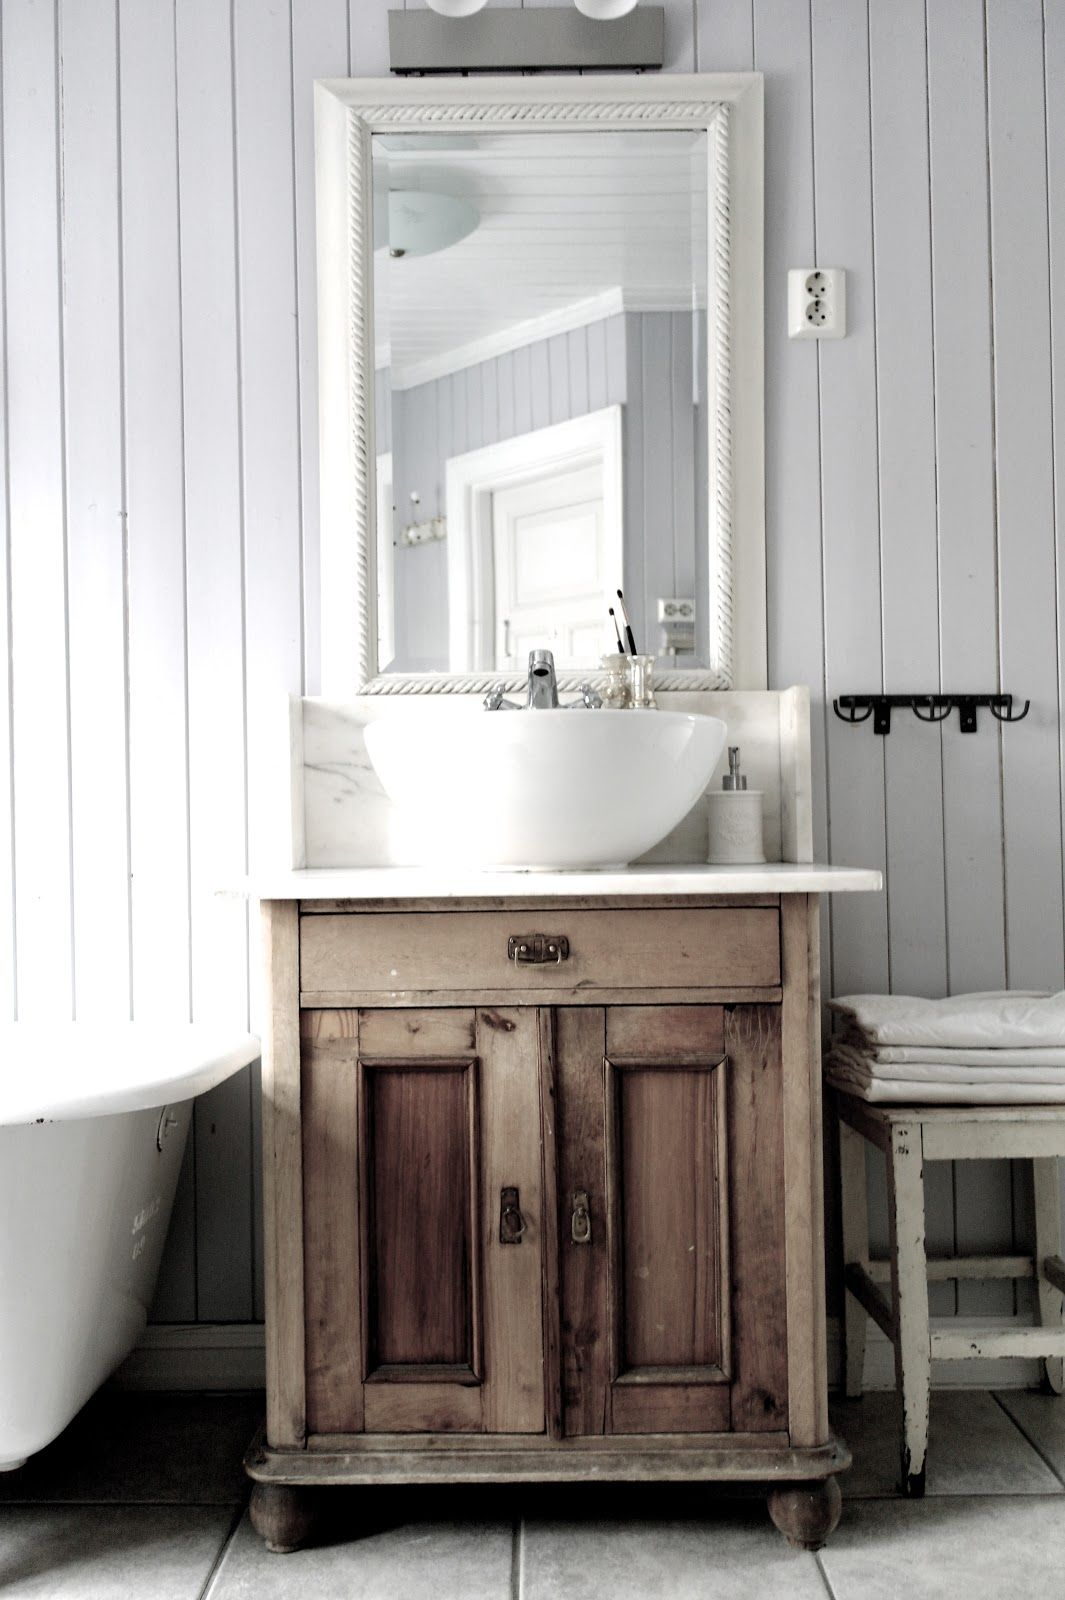 Vintage Interior Antique stand used as bathroom vanity